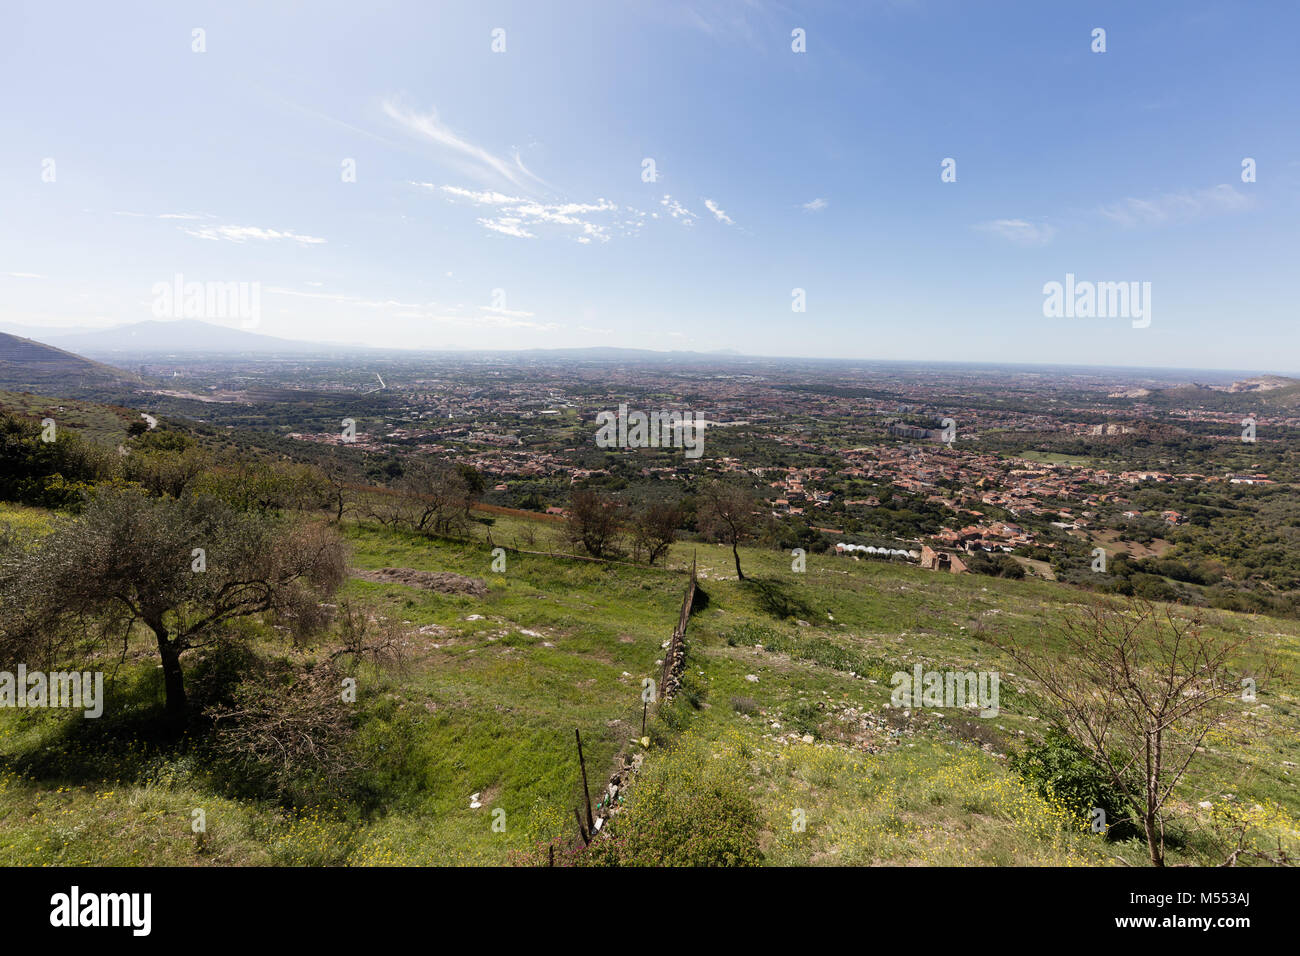 Viiew of Caserta Vecchia Stock Photo